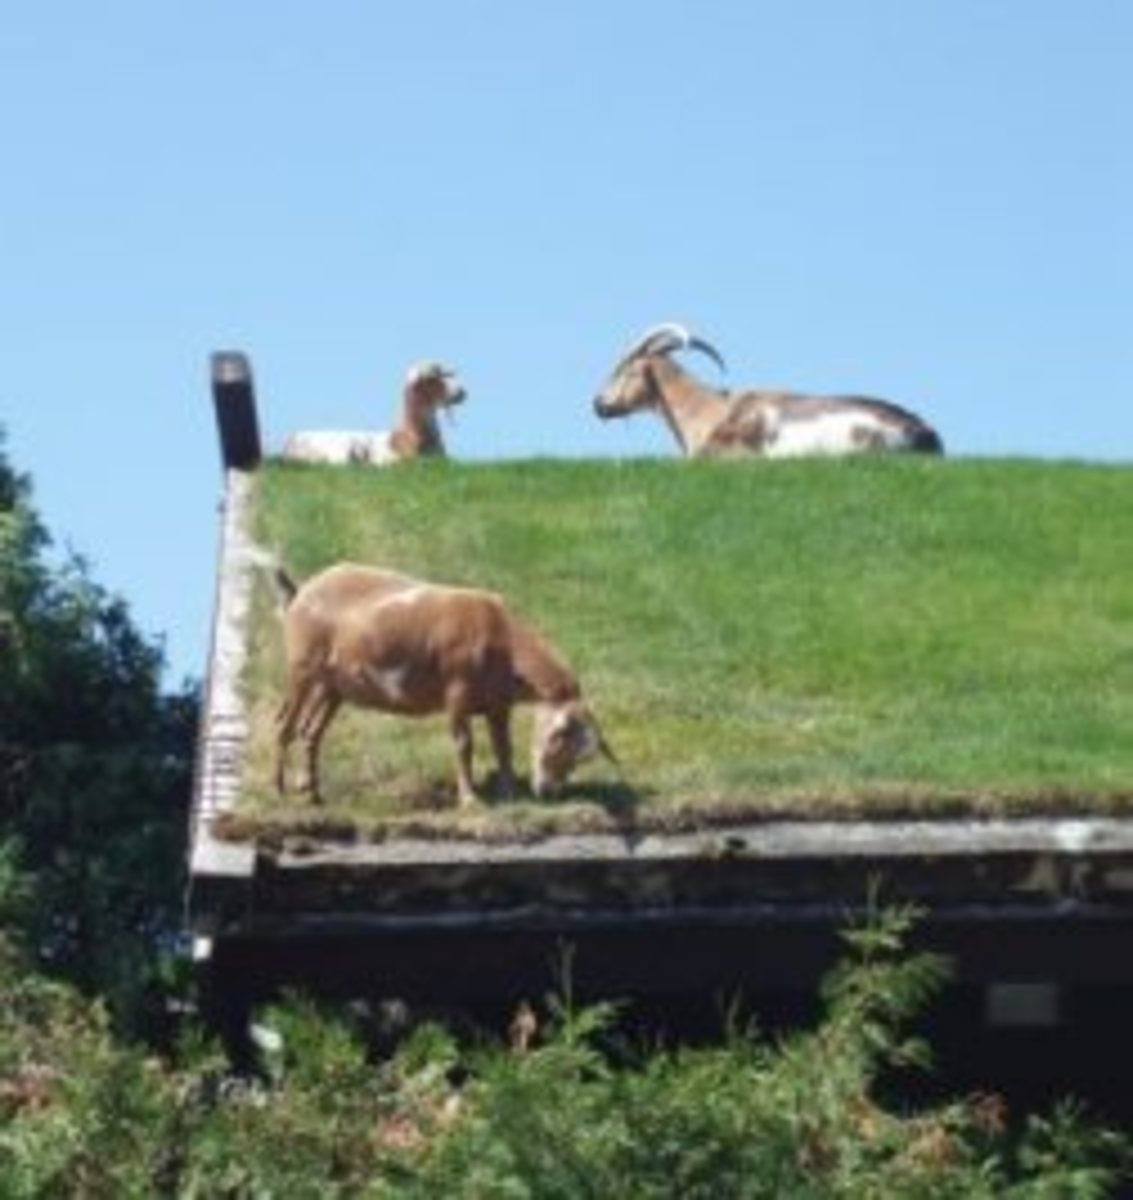 Door county Goats on a Green Grassy Roof Top